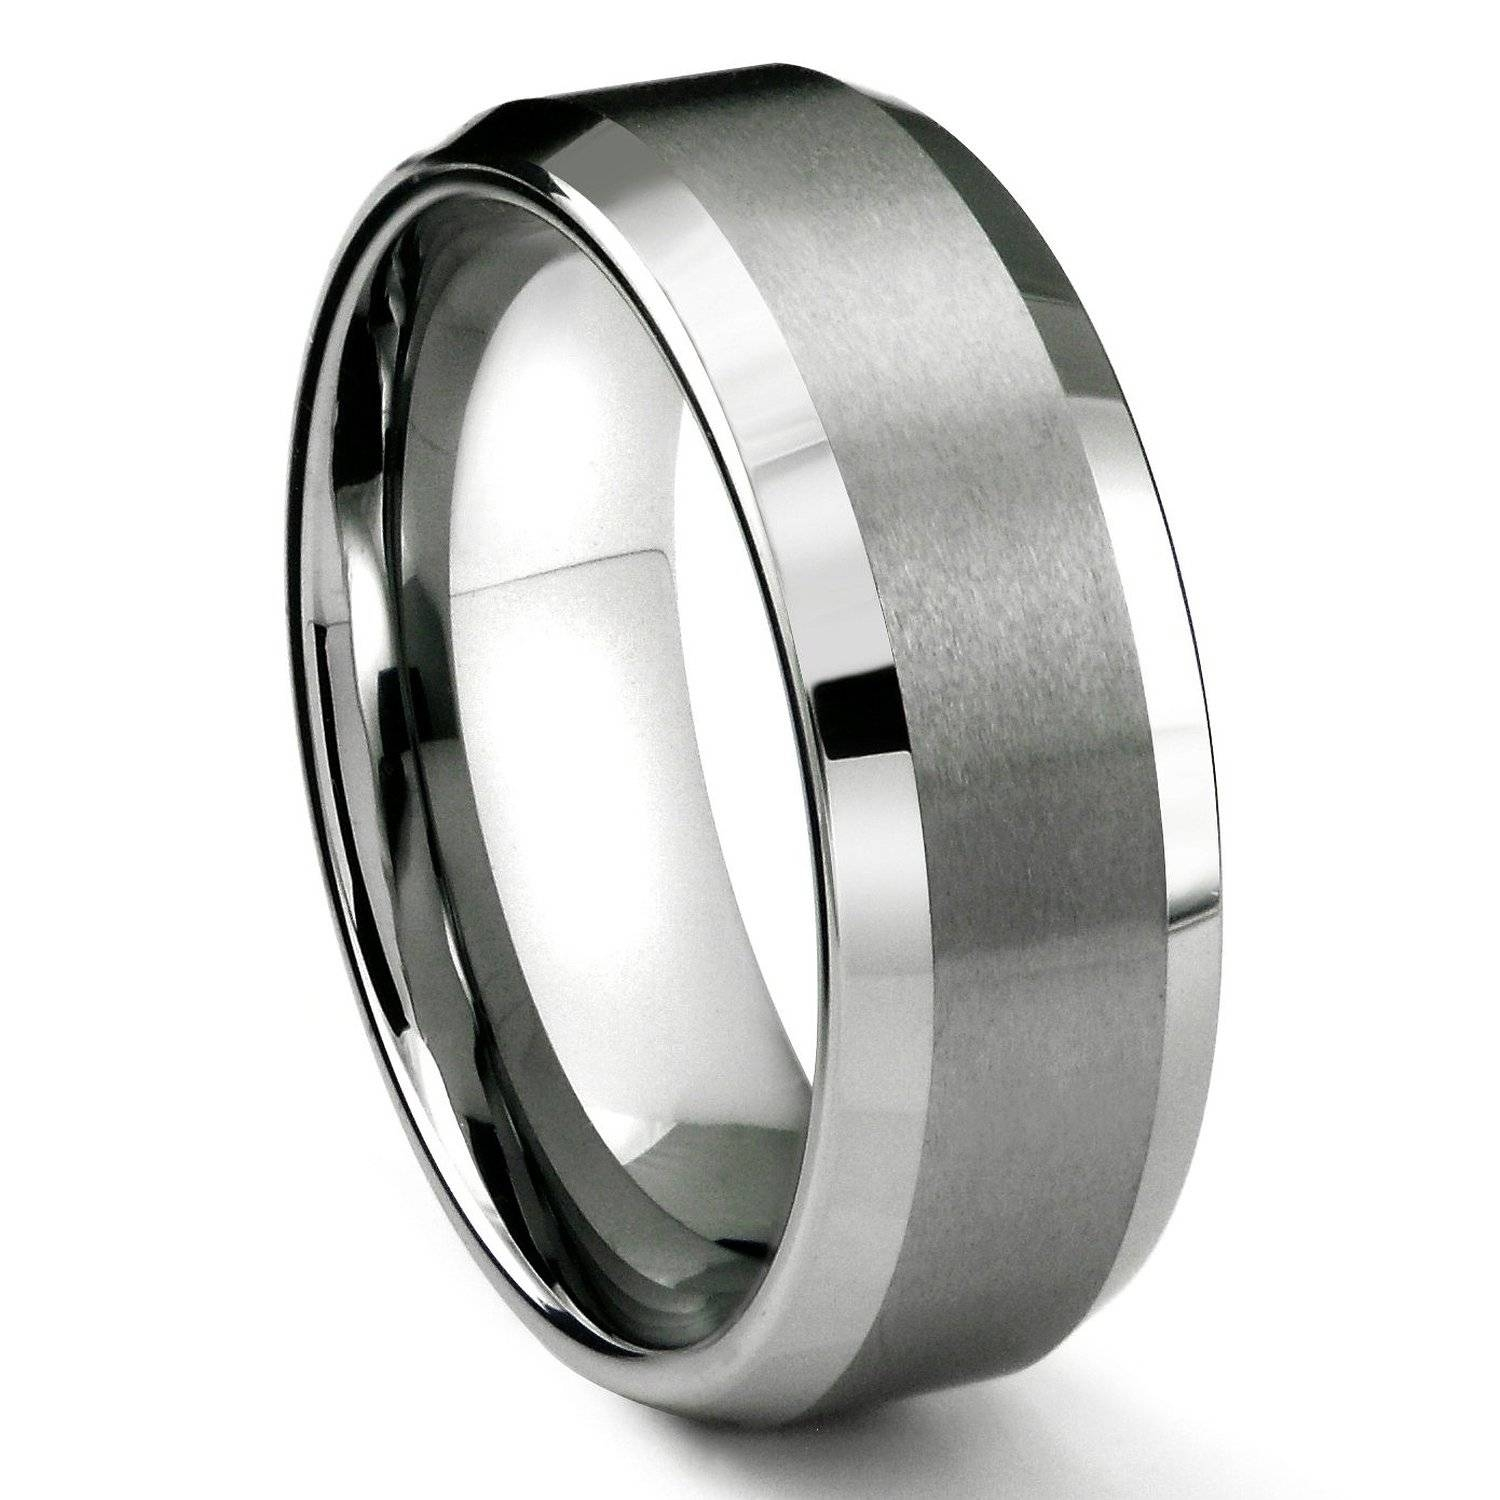 Mens Wedding Ring Throughout Men's Wedding Bands Metals (View 12 of 15)